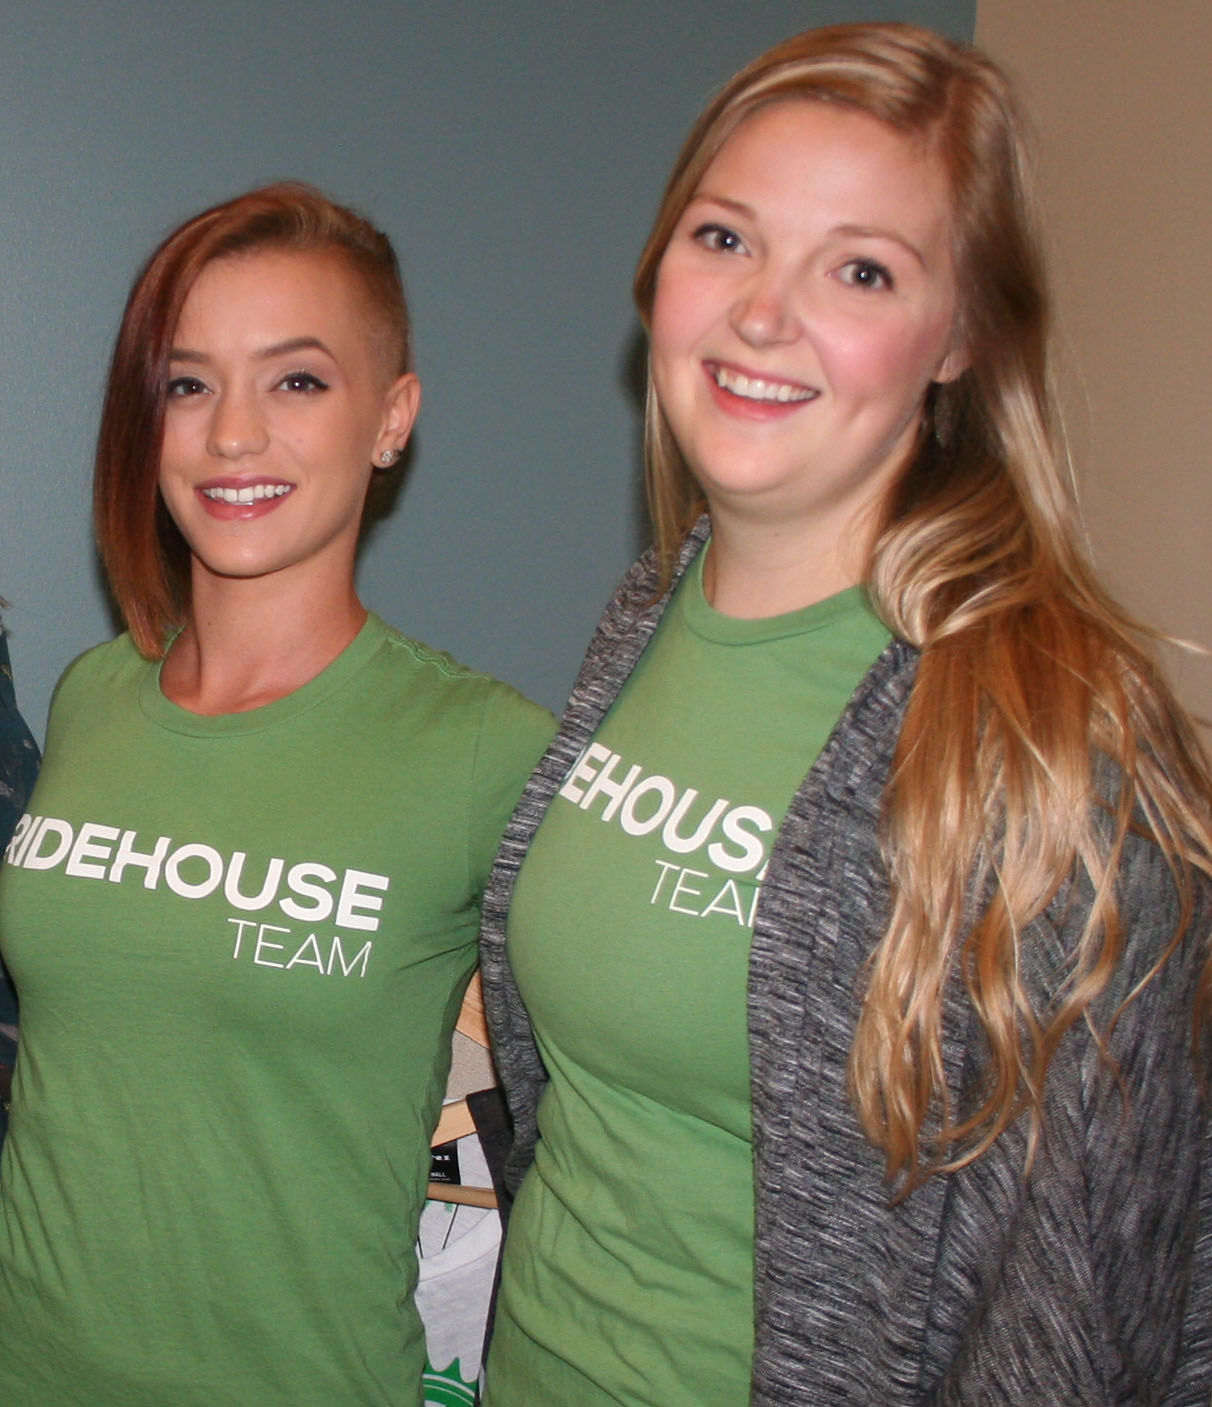 Jenna Asher and Brittany Williams manned a booth for Ridehouse.